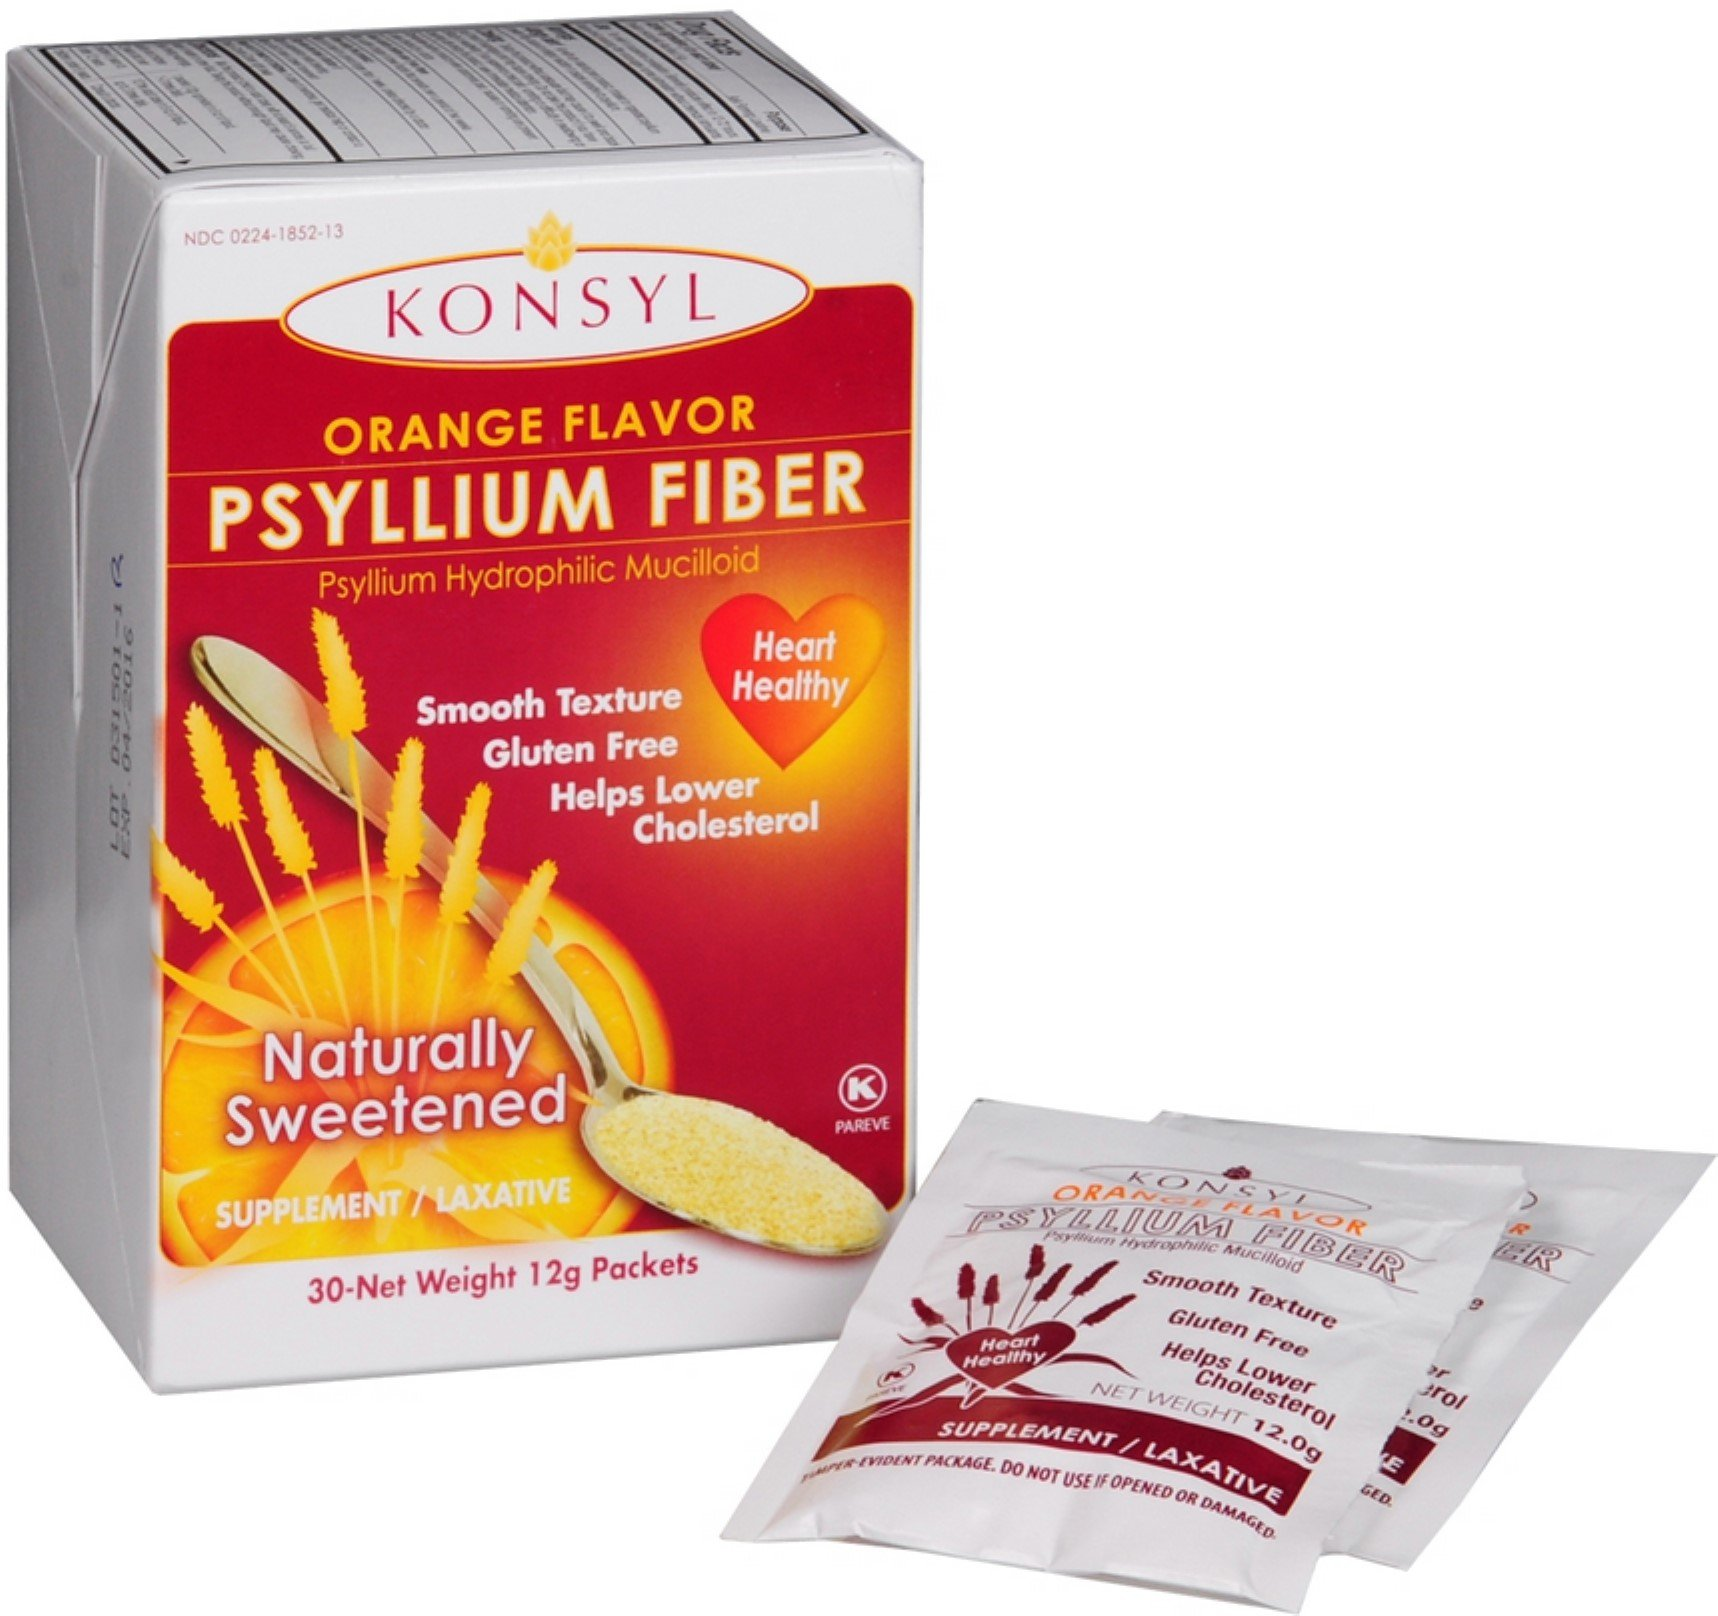 Konsyl Orange Flavor Psyllium Fiber Powder Packets, 30 each (Pack of 3) by Konsyl